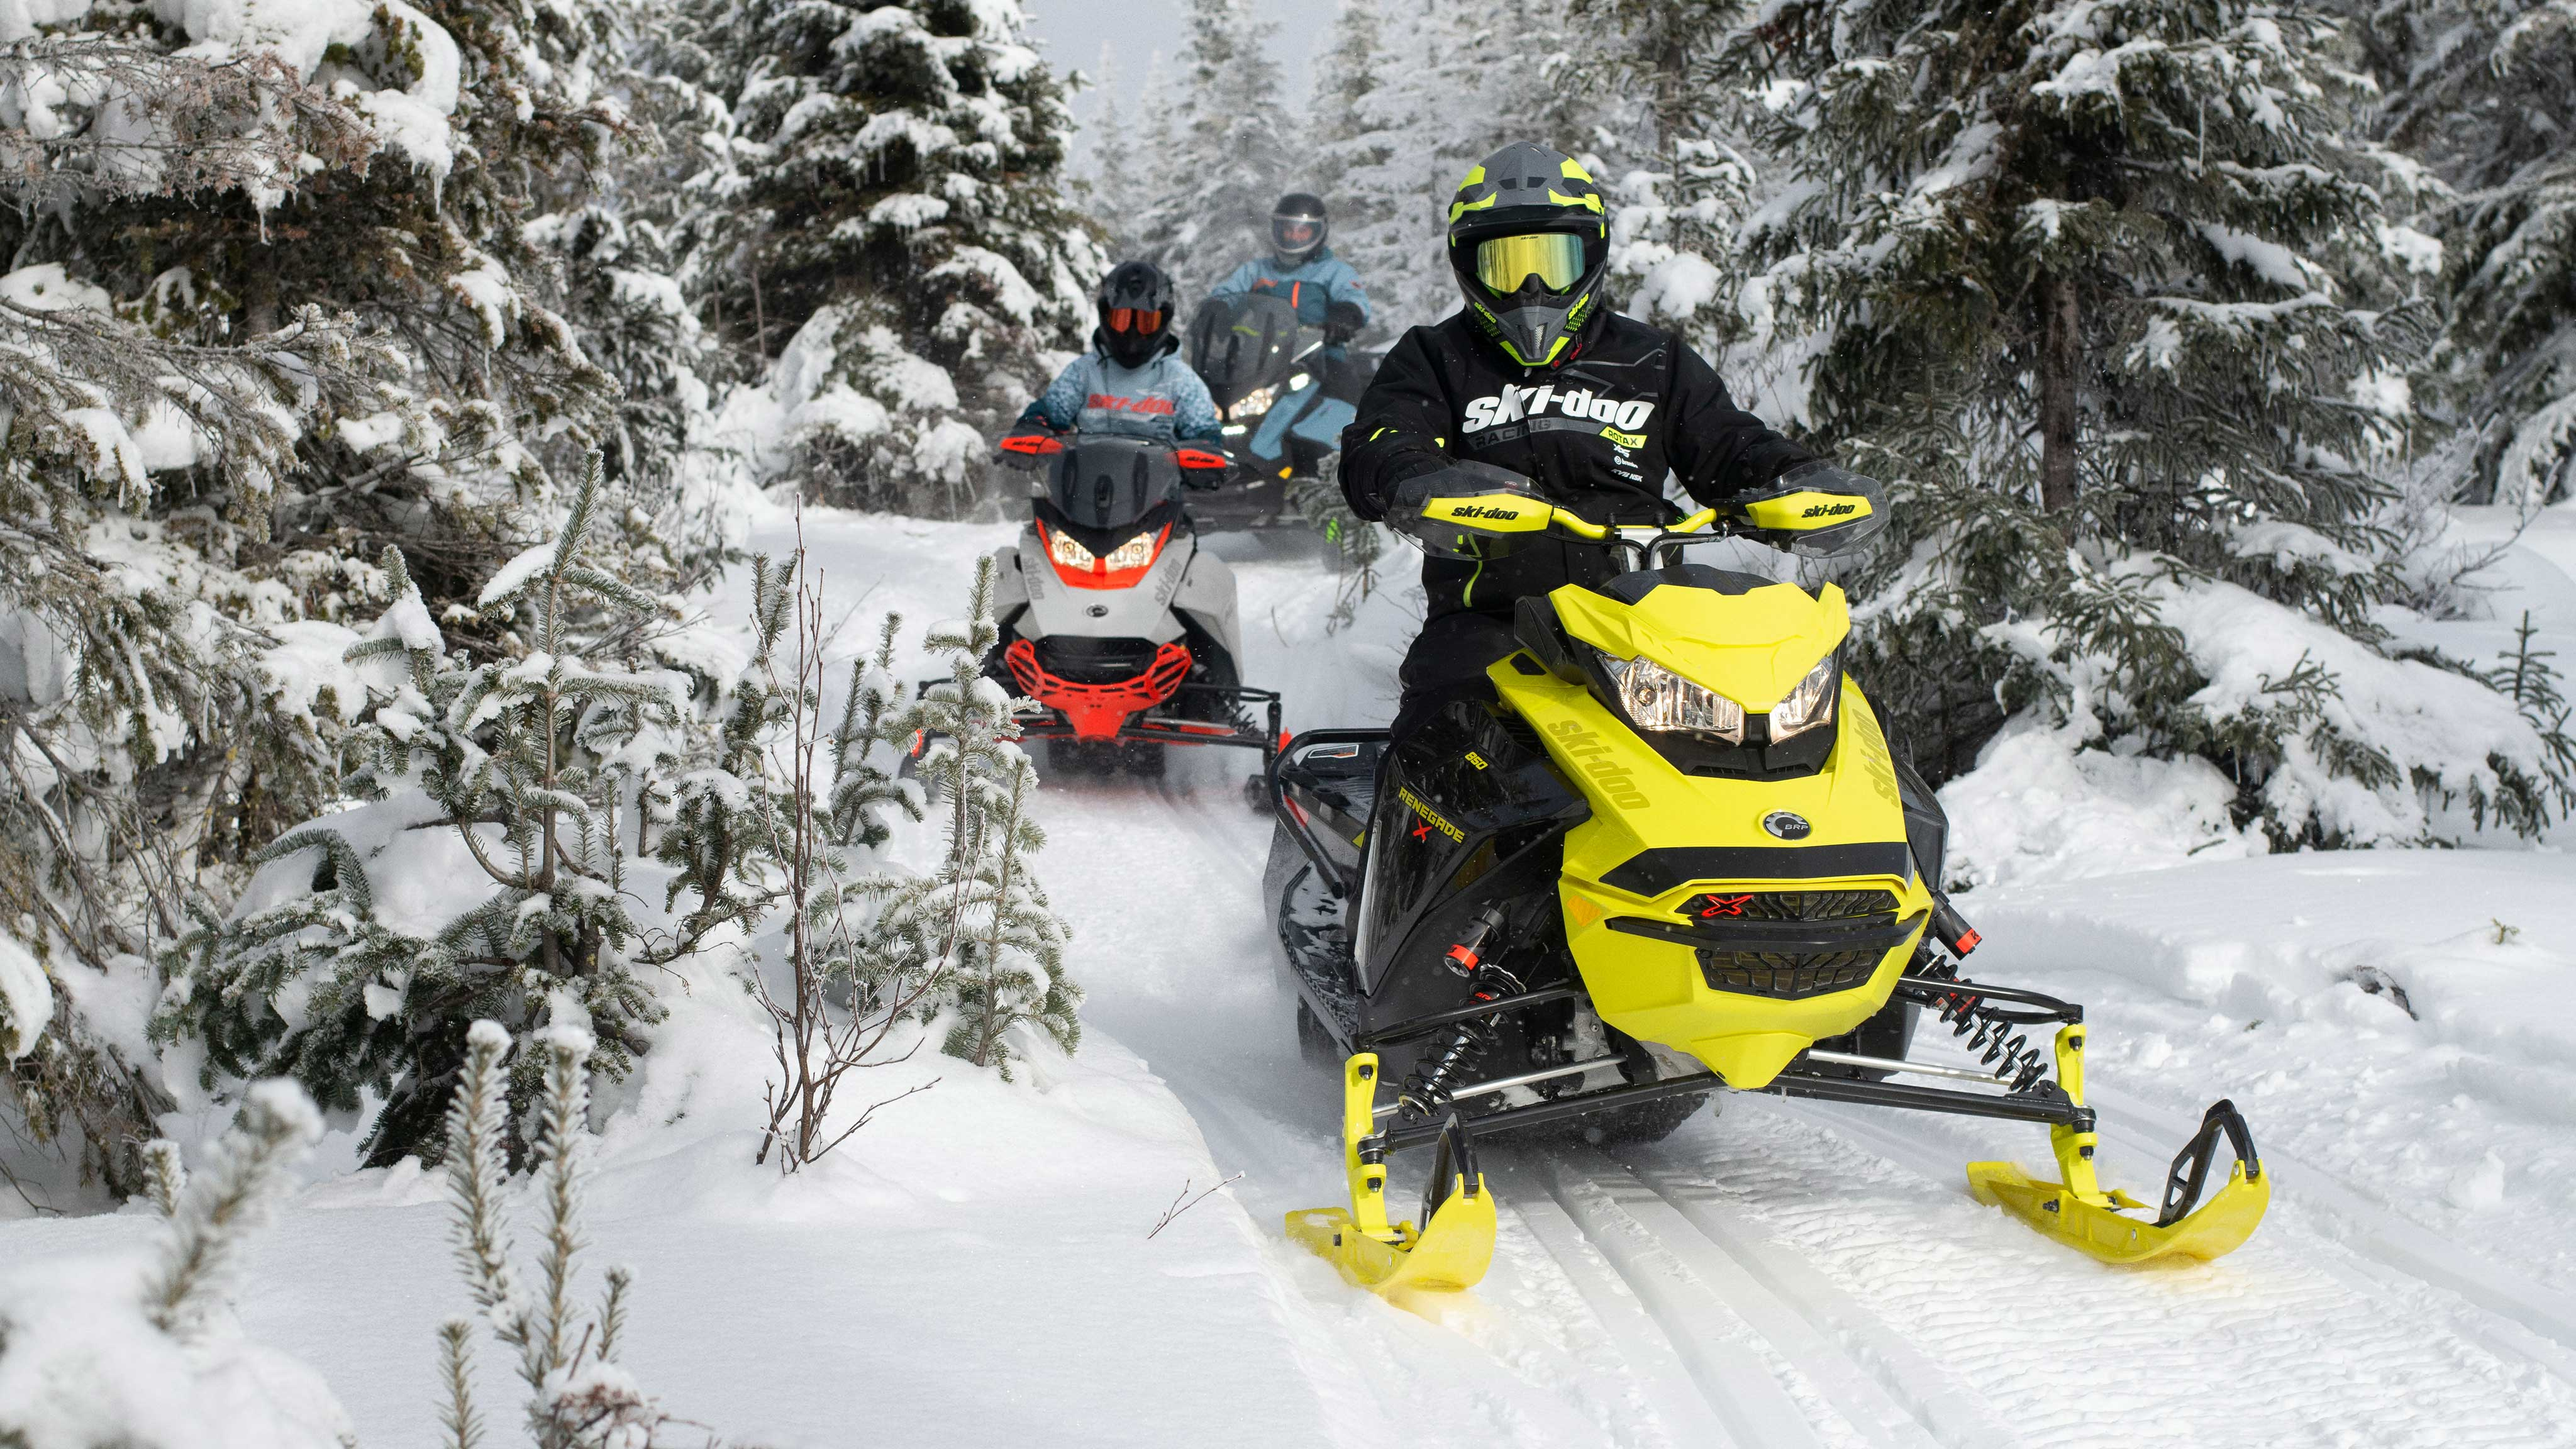 Group of riders driving the 2022 Ski-Doo lineup